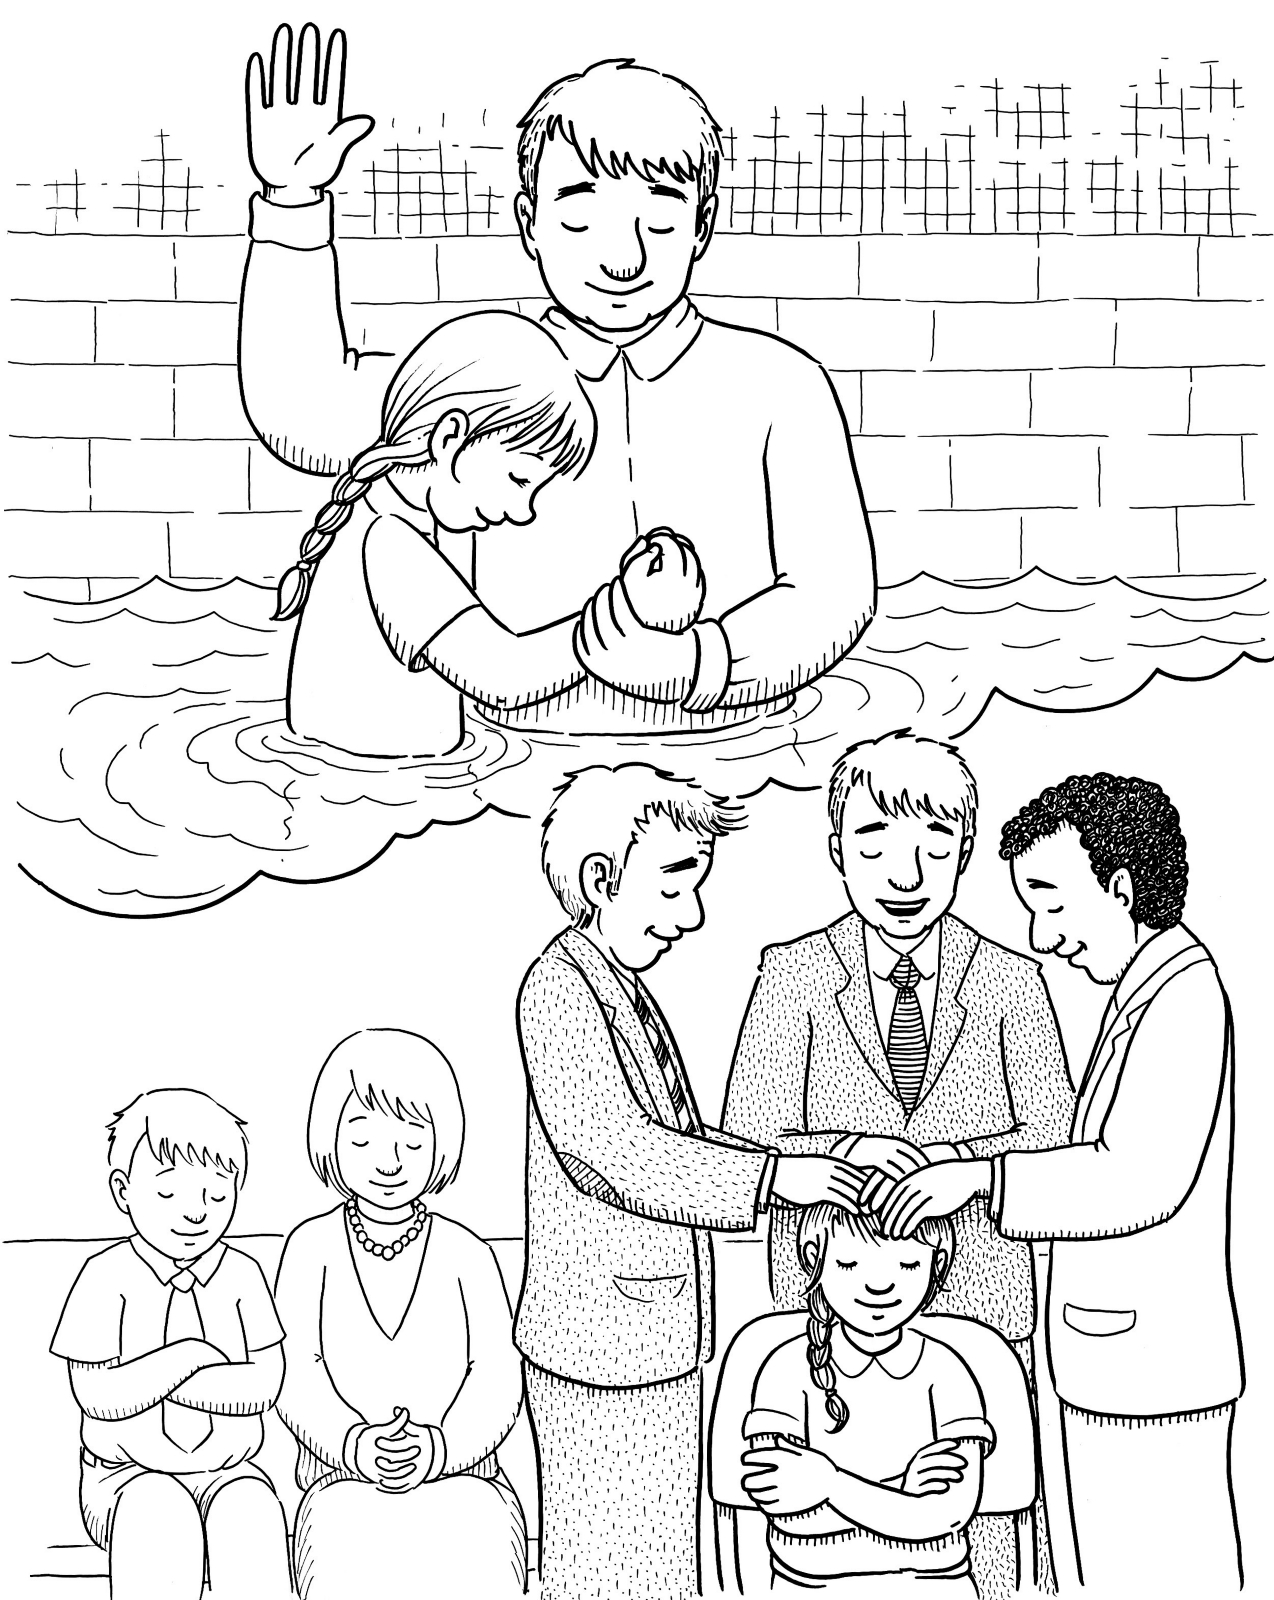 Baptism Drawing at GetDrawings.com | Free for personal use Baptism ...